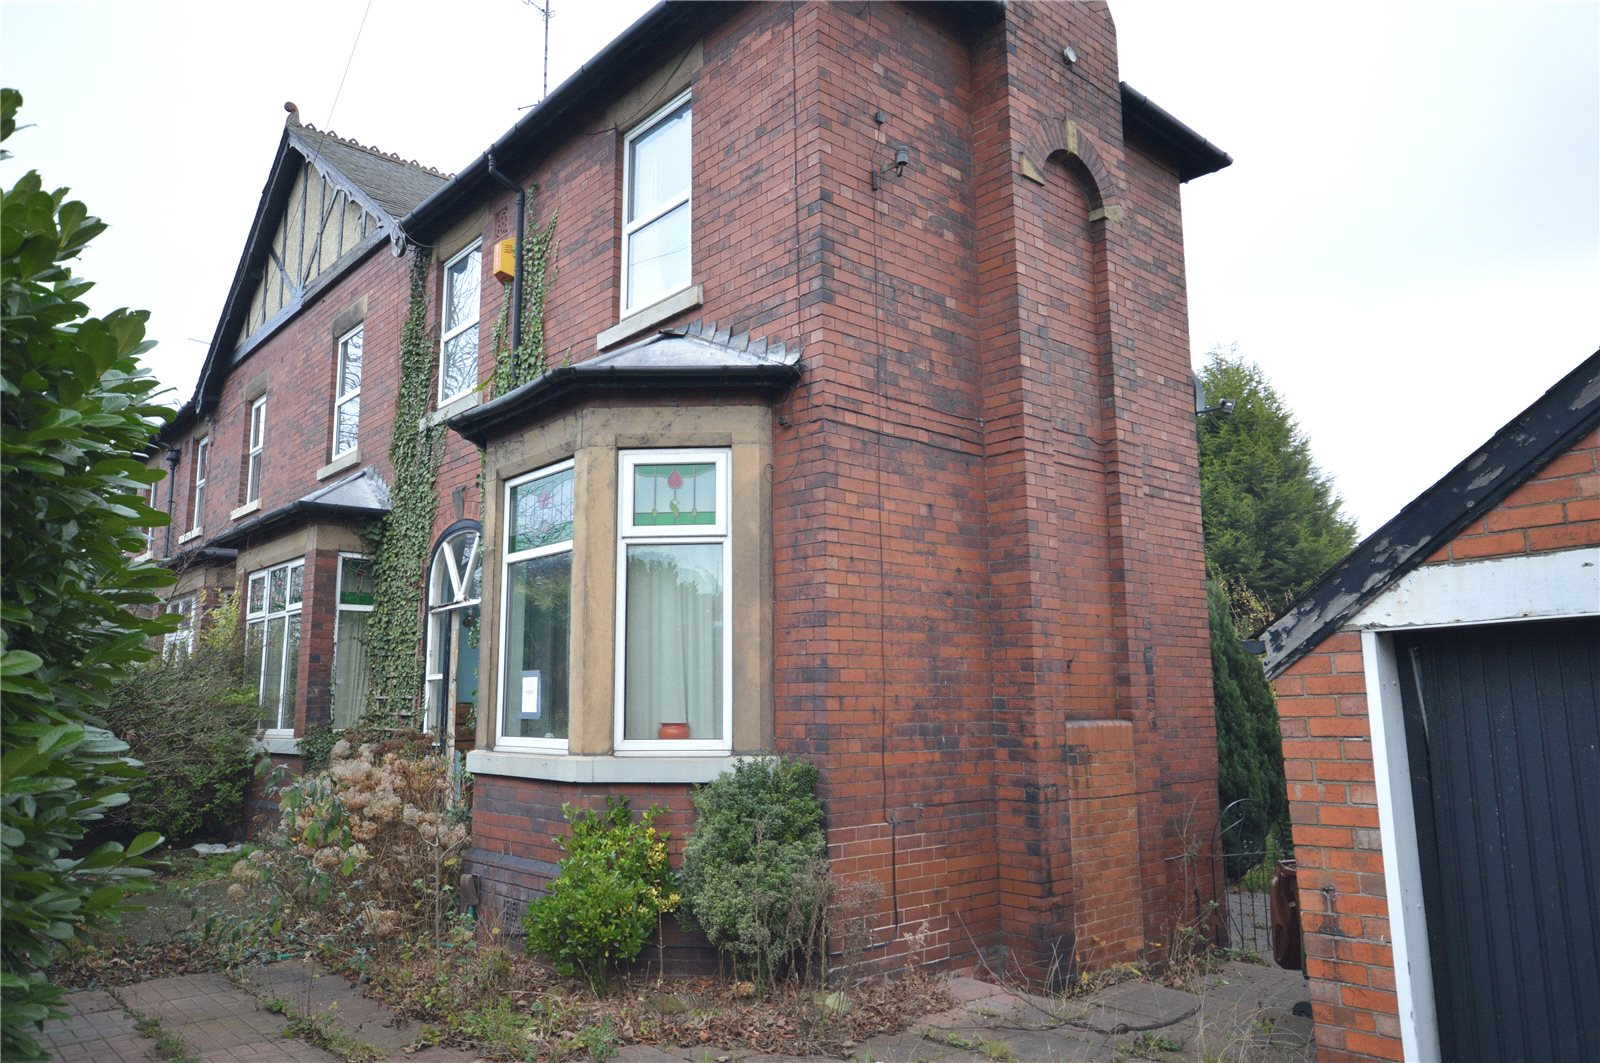 Property for sale in Sandal, exterior of semi detached red brick home